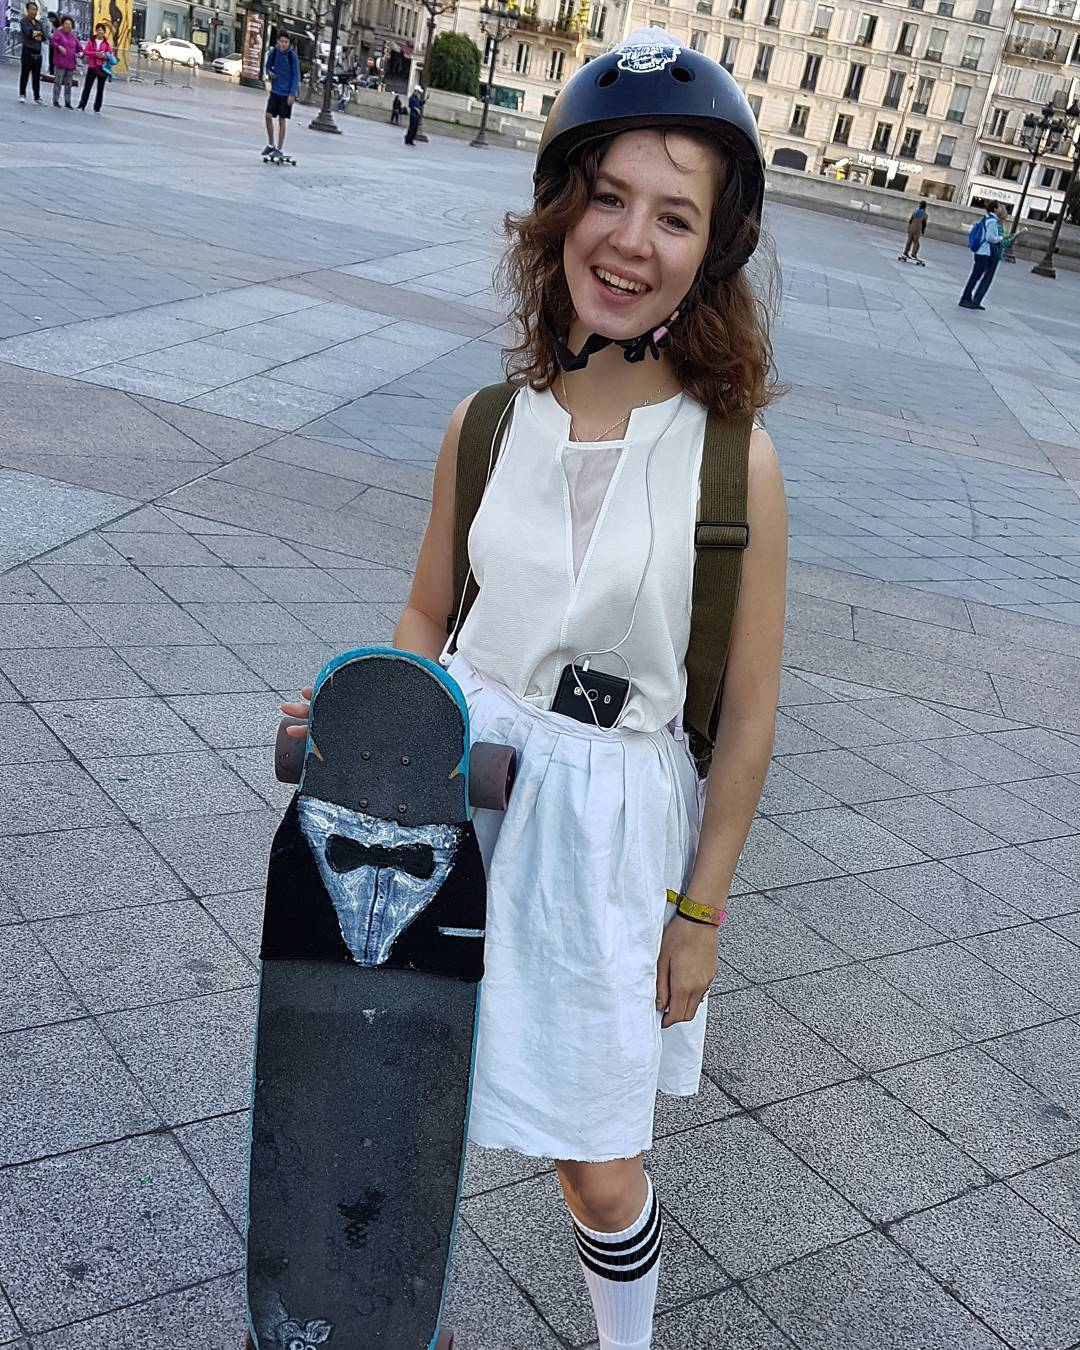 @solennelbrt joined us with her chubby husband #docksession #longboardinvasion #Paris